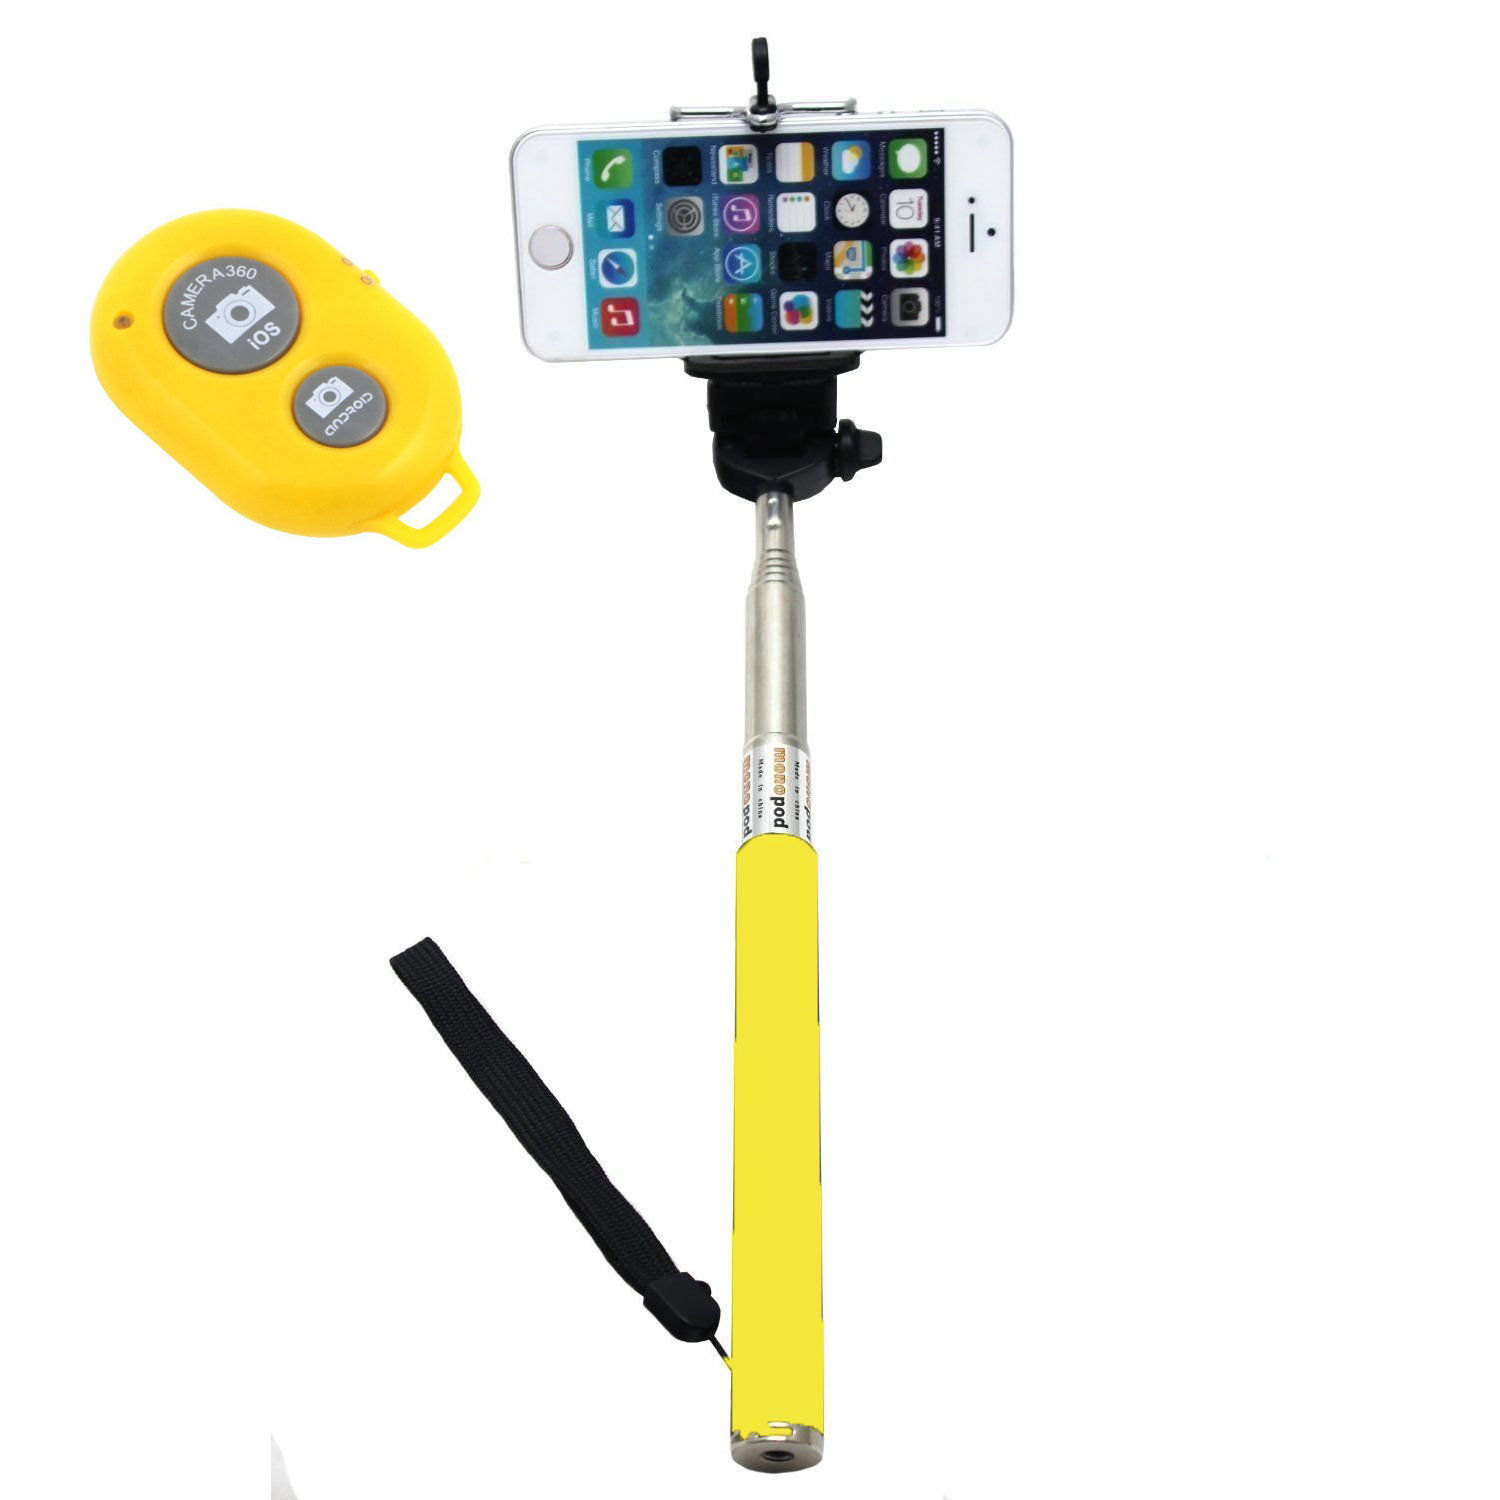 selfie stick monopod halterung aufl ser selbstportr t iphone samsung ipad. Black Bedroom Furniture Sets. Home Design Ideas